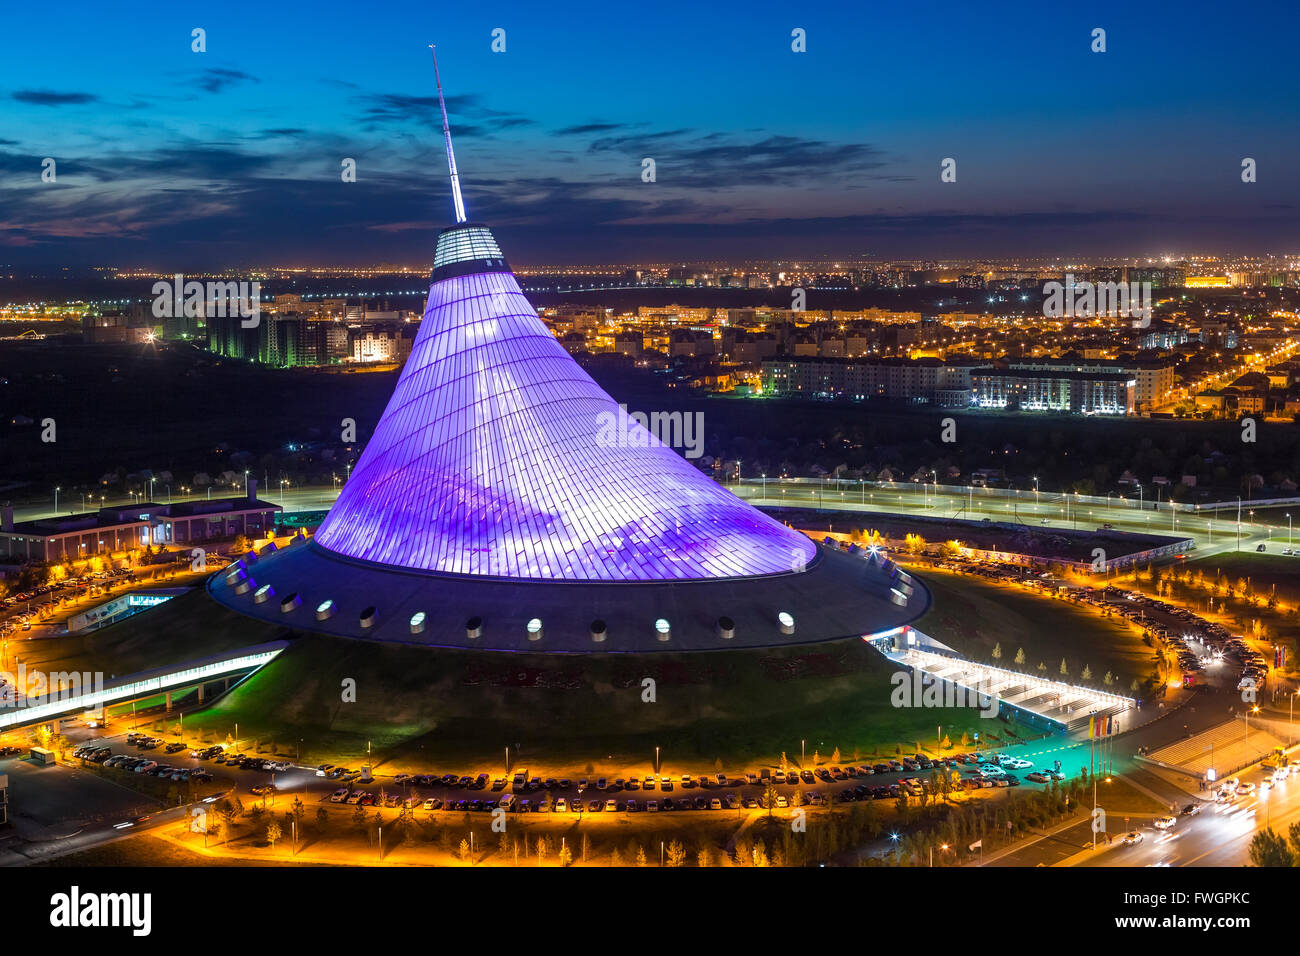 Night view over Khan Shatyr entertainment center, Astana, Kazakhstan, Central Asia - Stock Image